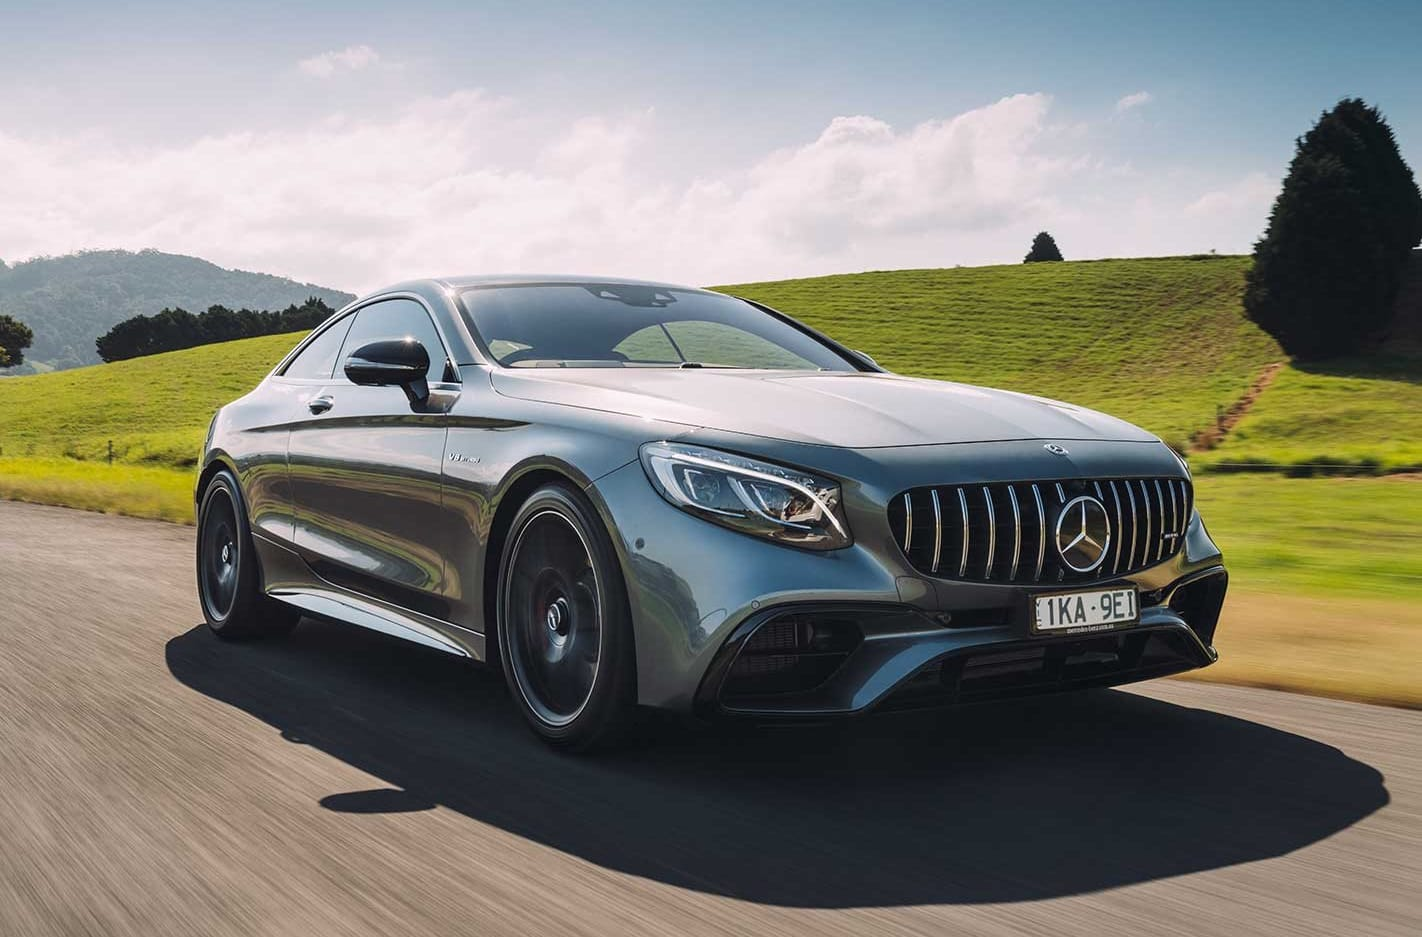 2018 Mercedes-AMG S63 Coupe performance review